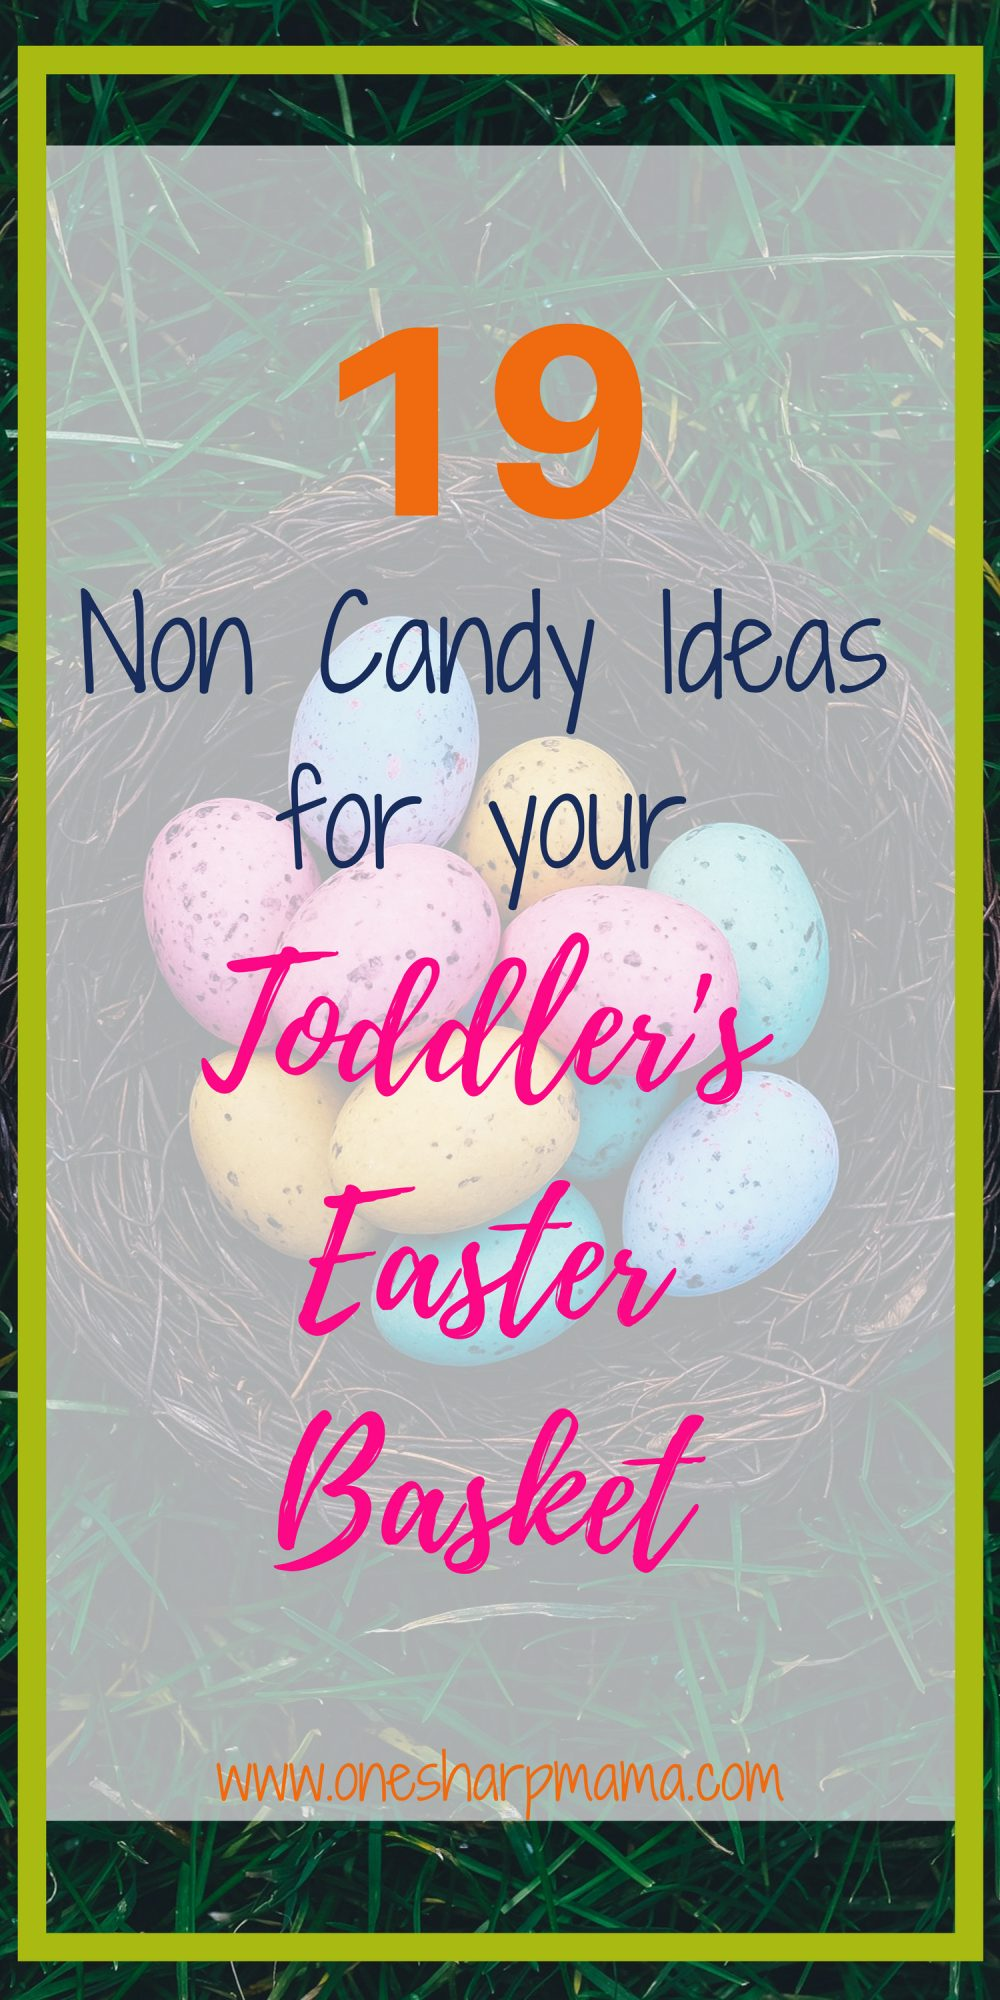 19 Non Candy Easter Basket Ideas for Toddlers